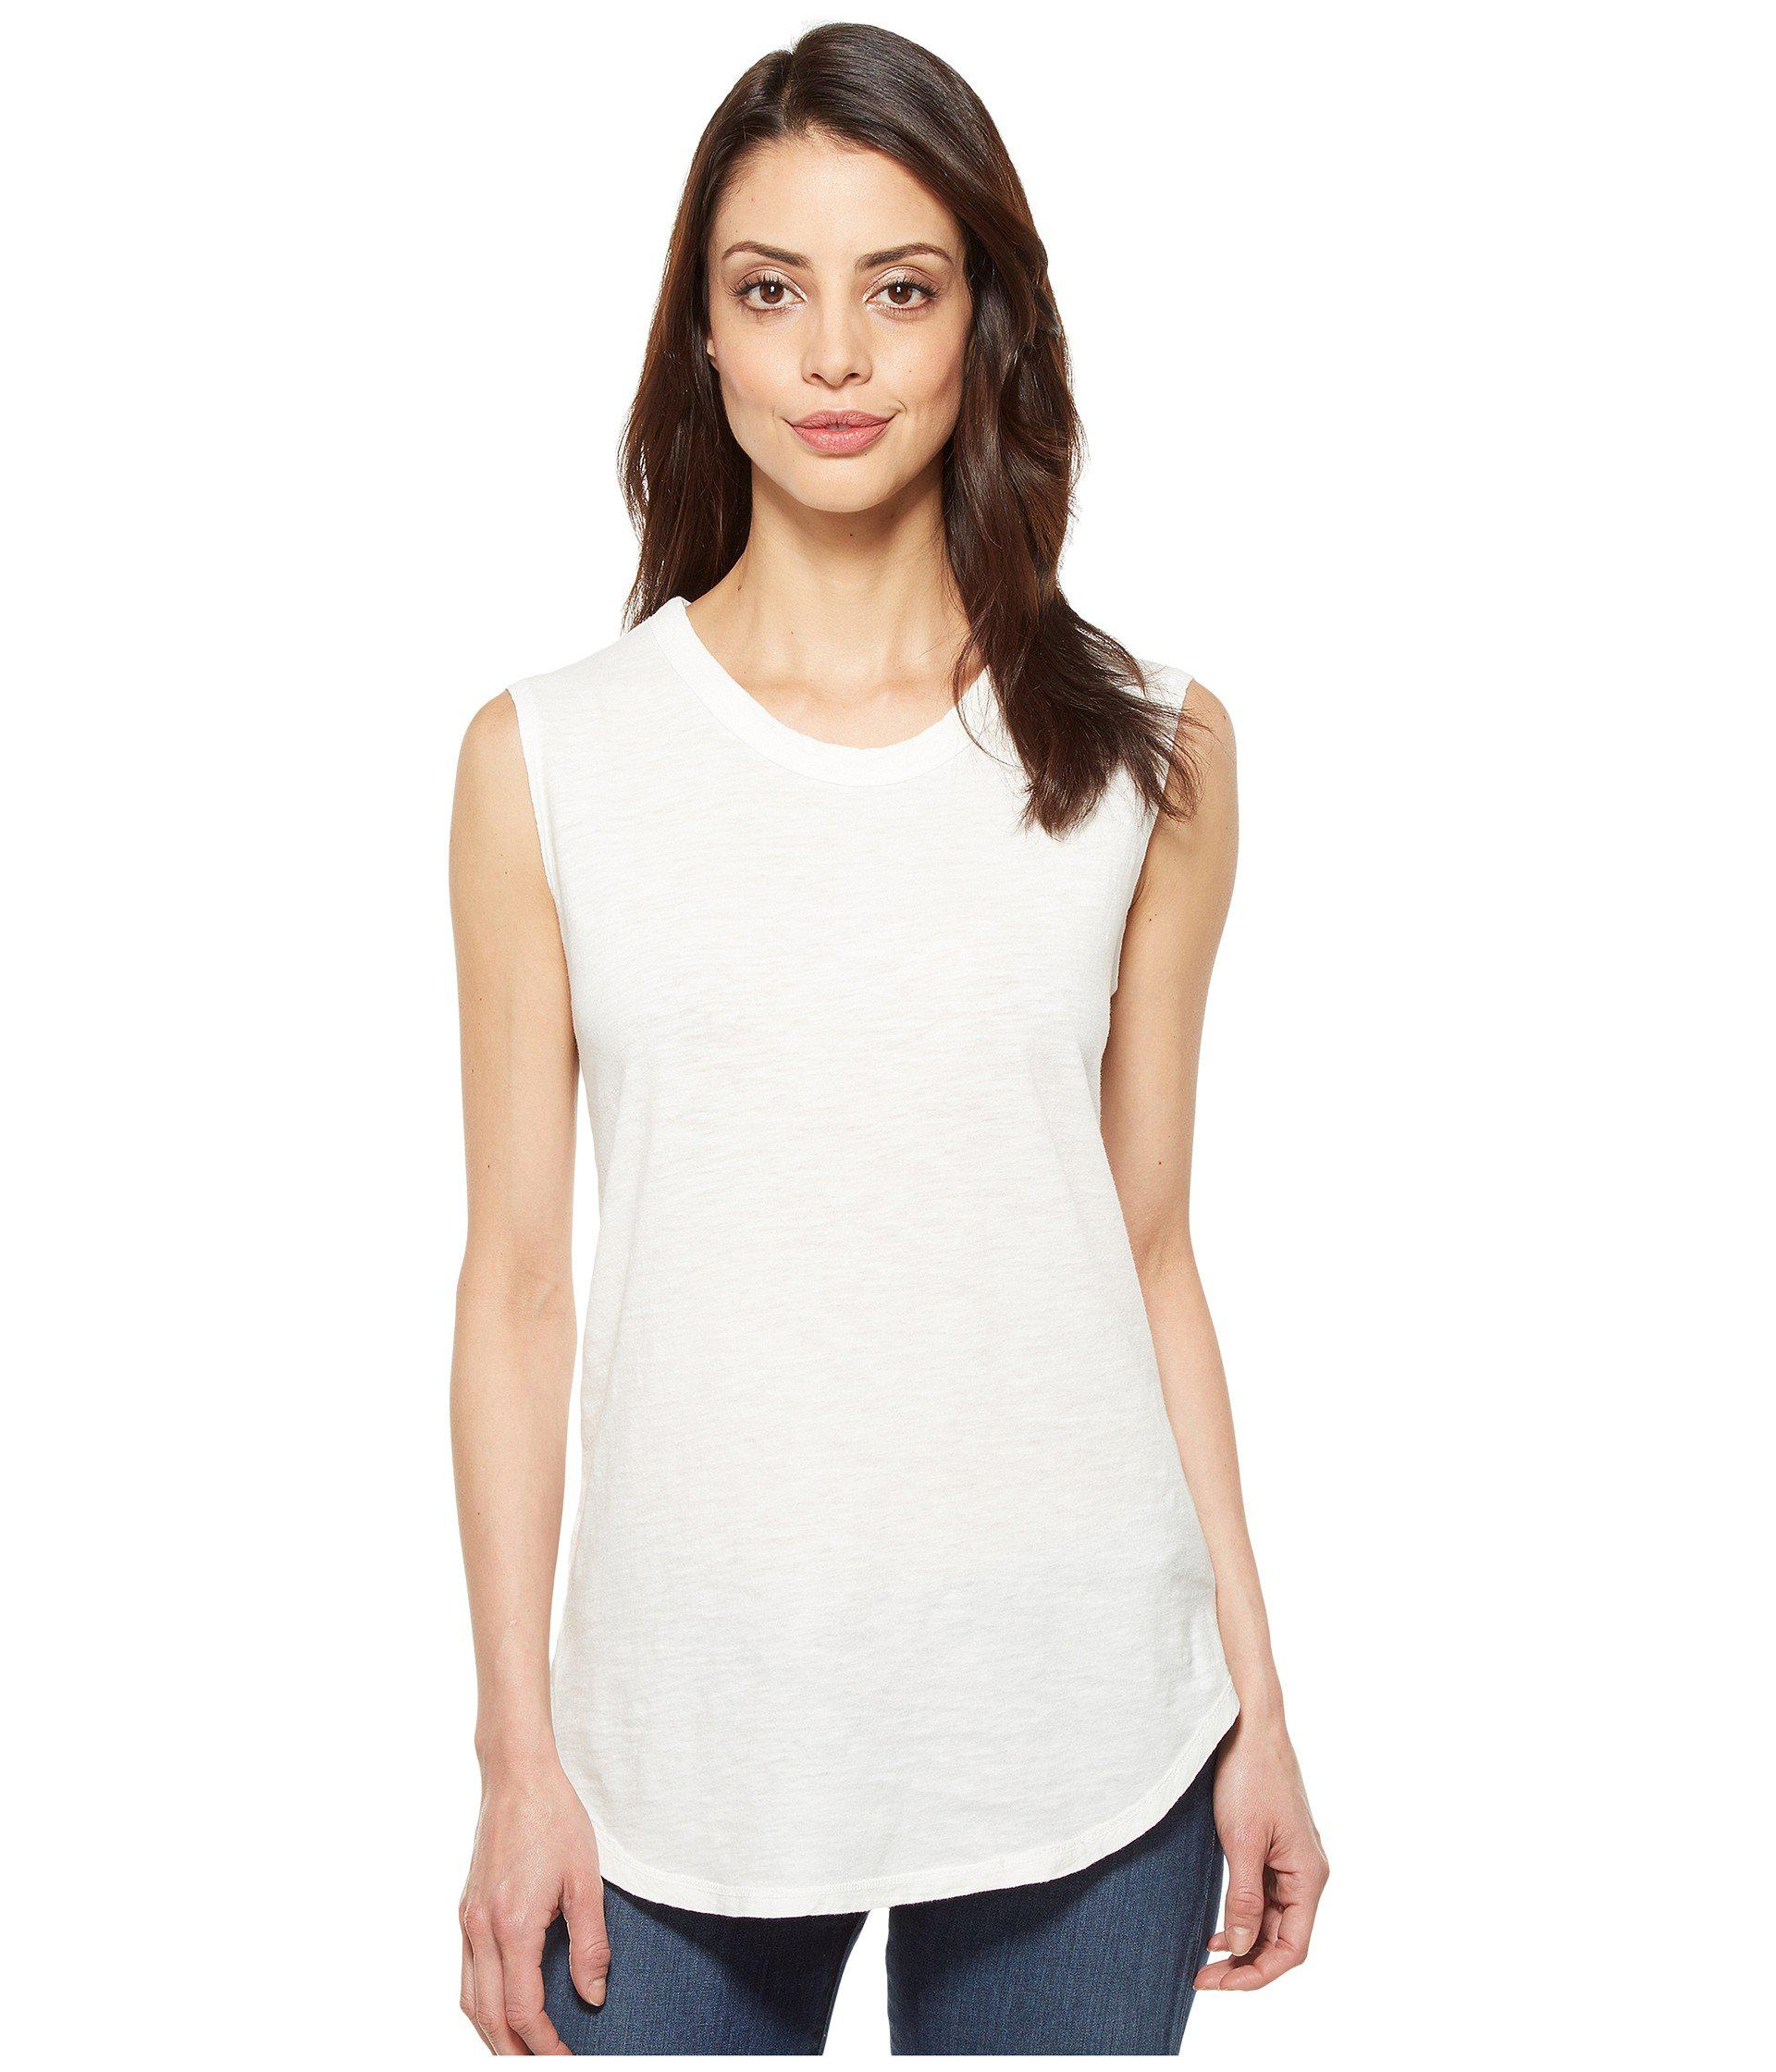 d5b7e41e78064e Alternative Apparel. Women s White Inside Out Slub Sleeveless T-shirt